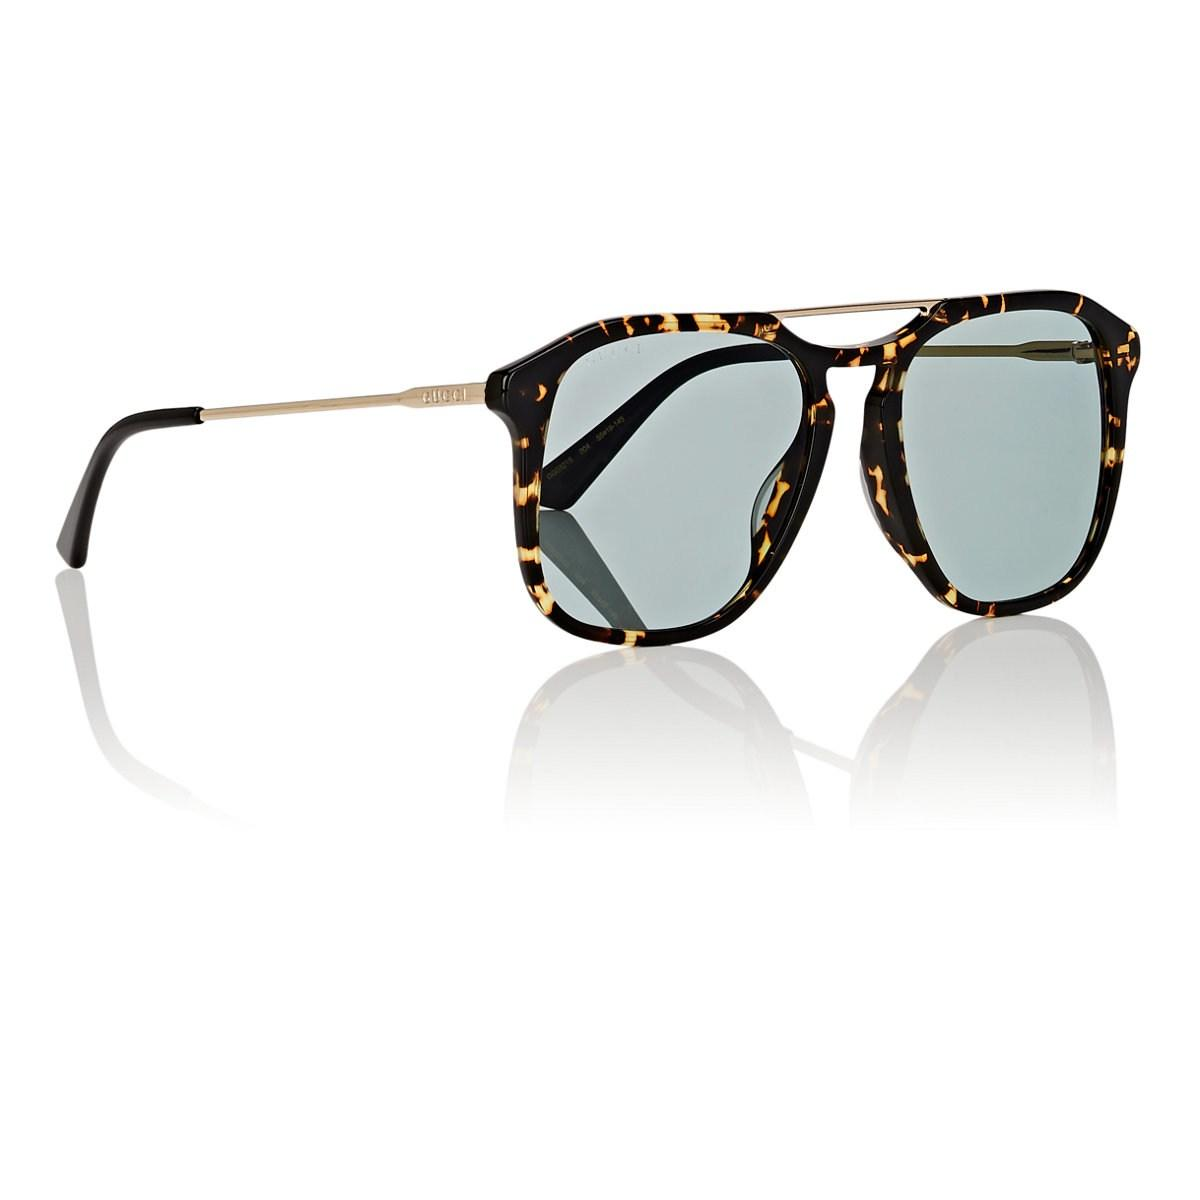 ab52bbc4168 Lyst - Gucci GG0321S Sunglasses in Brown for Men